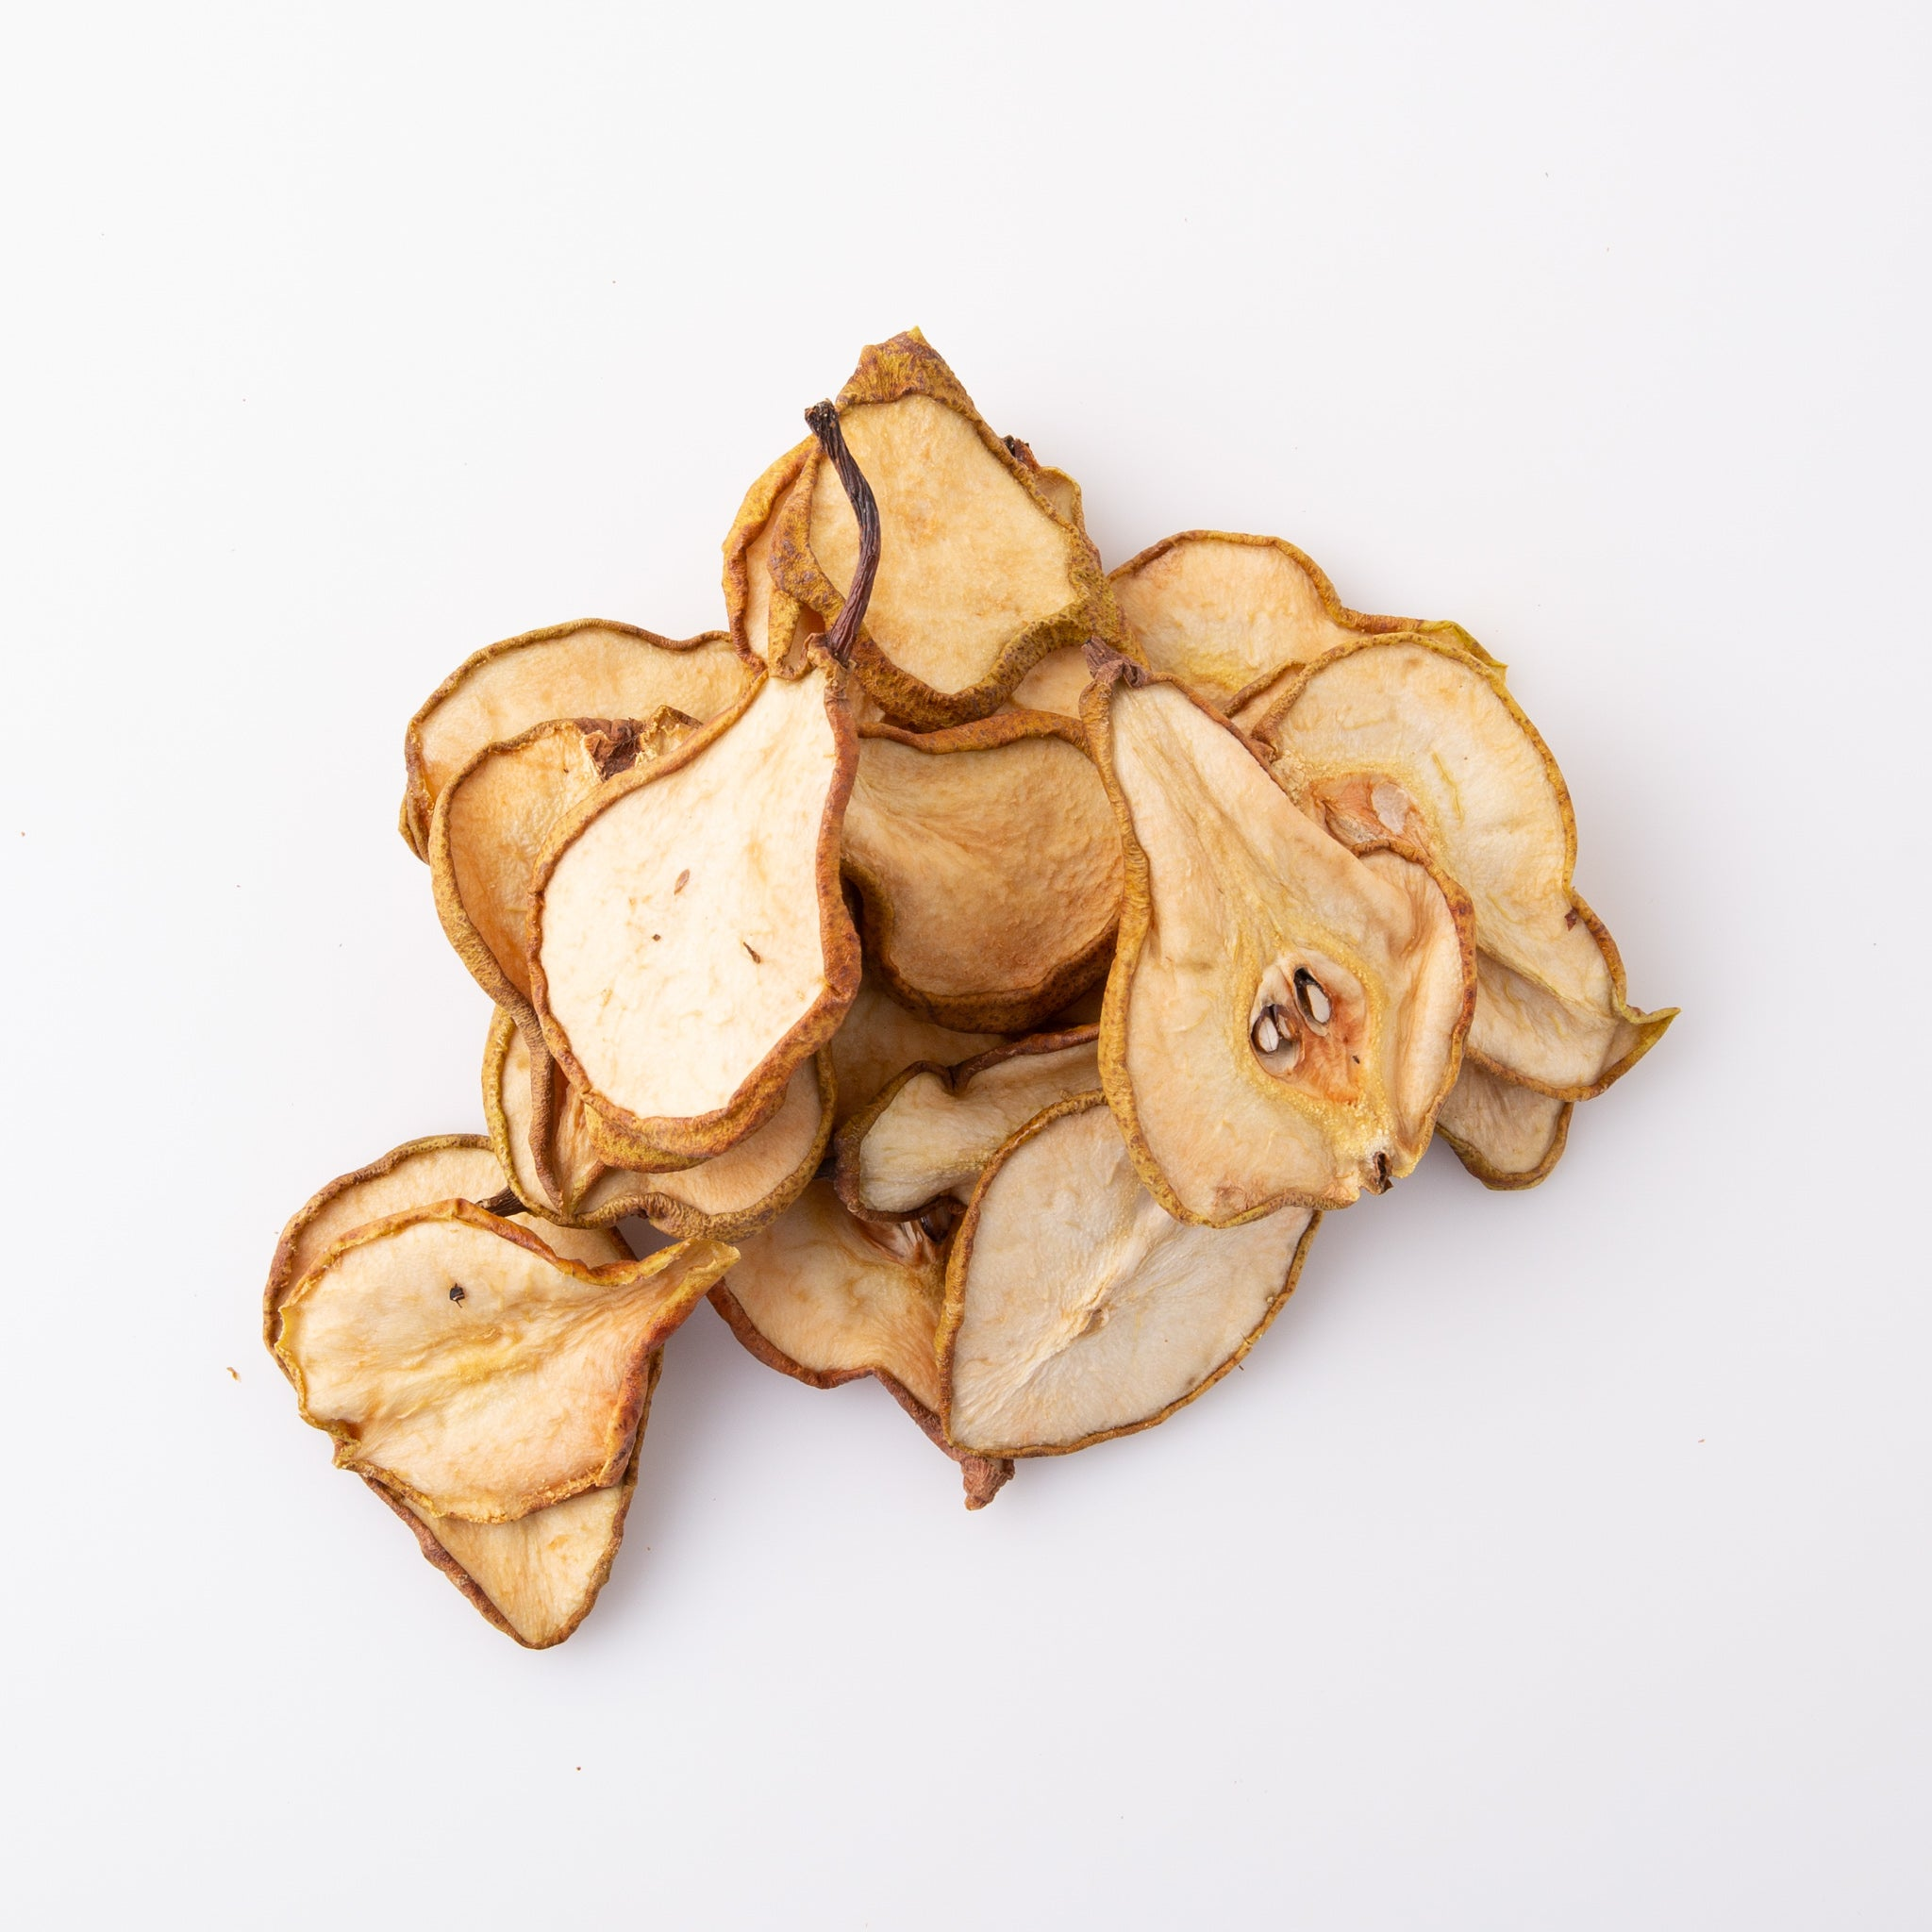 Australian Dried Pears